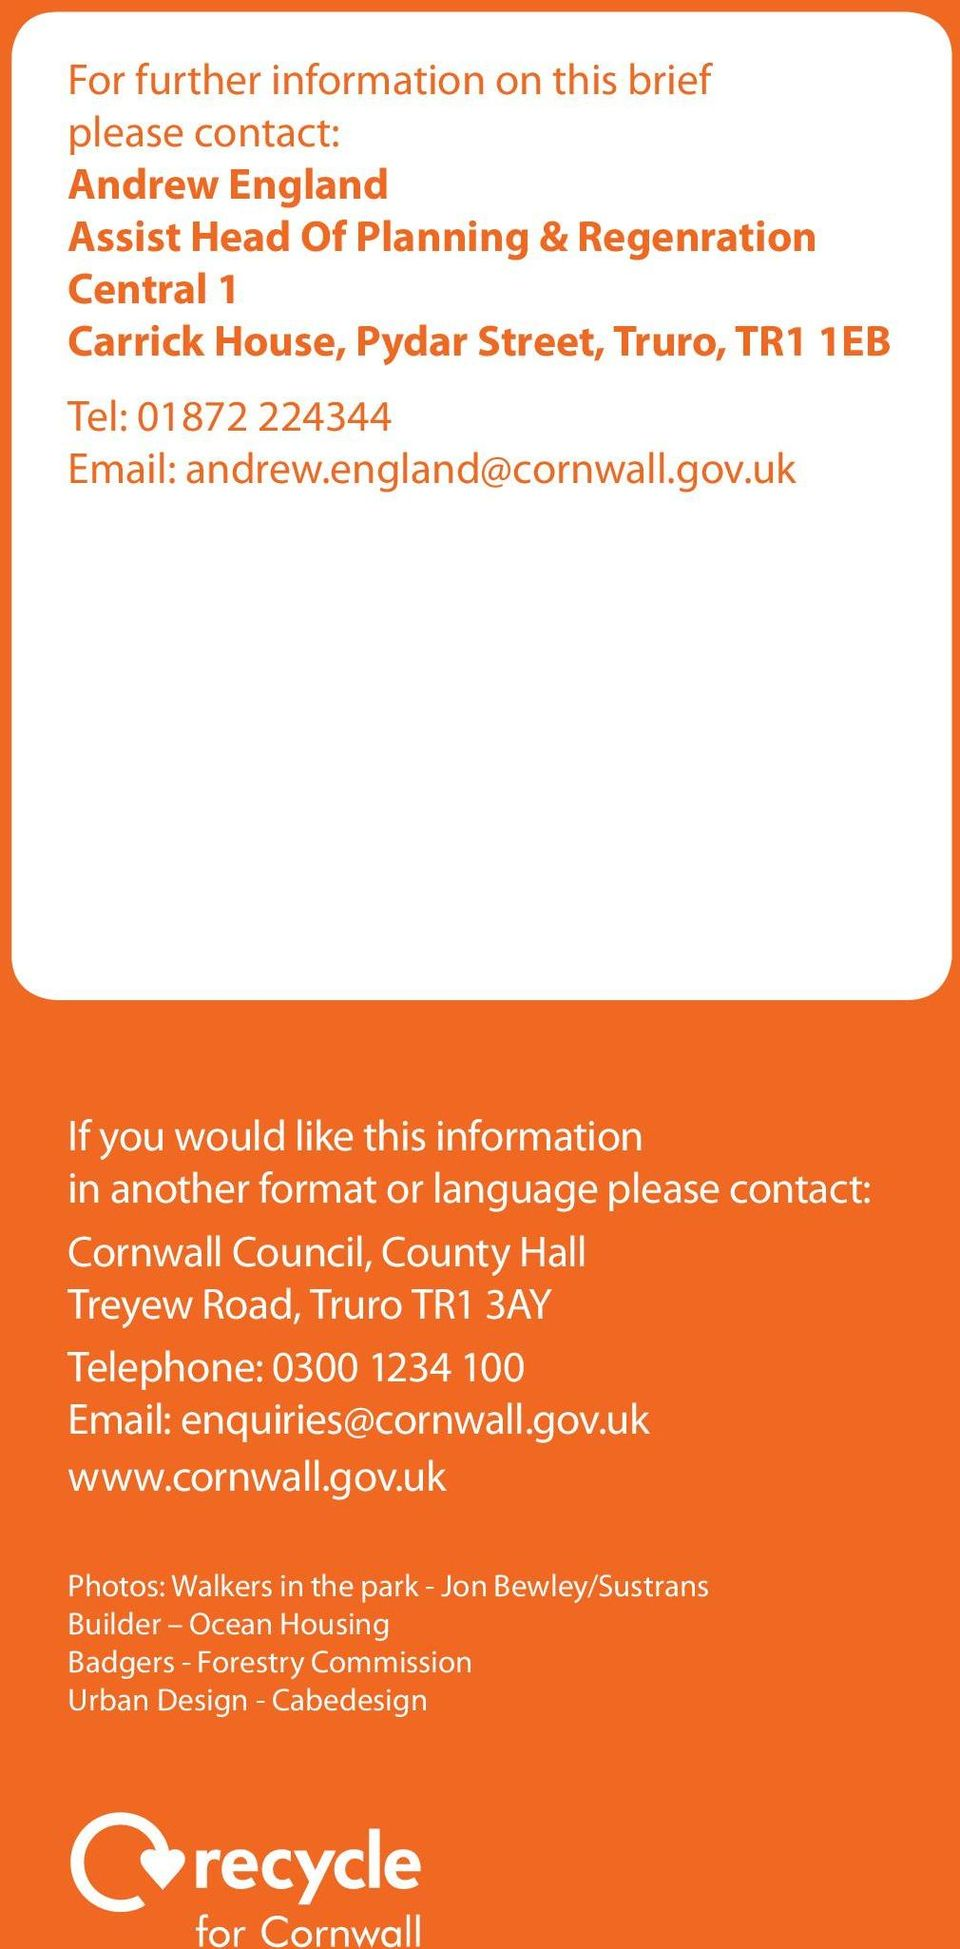 uk If you would like this information in another format or language please contact: Cornwall Council, County Hall Treyew Road, Truro TR1 3AY